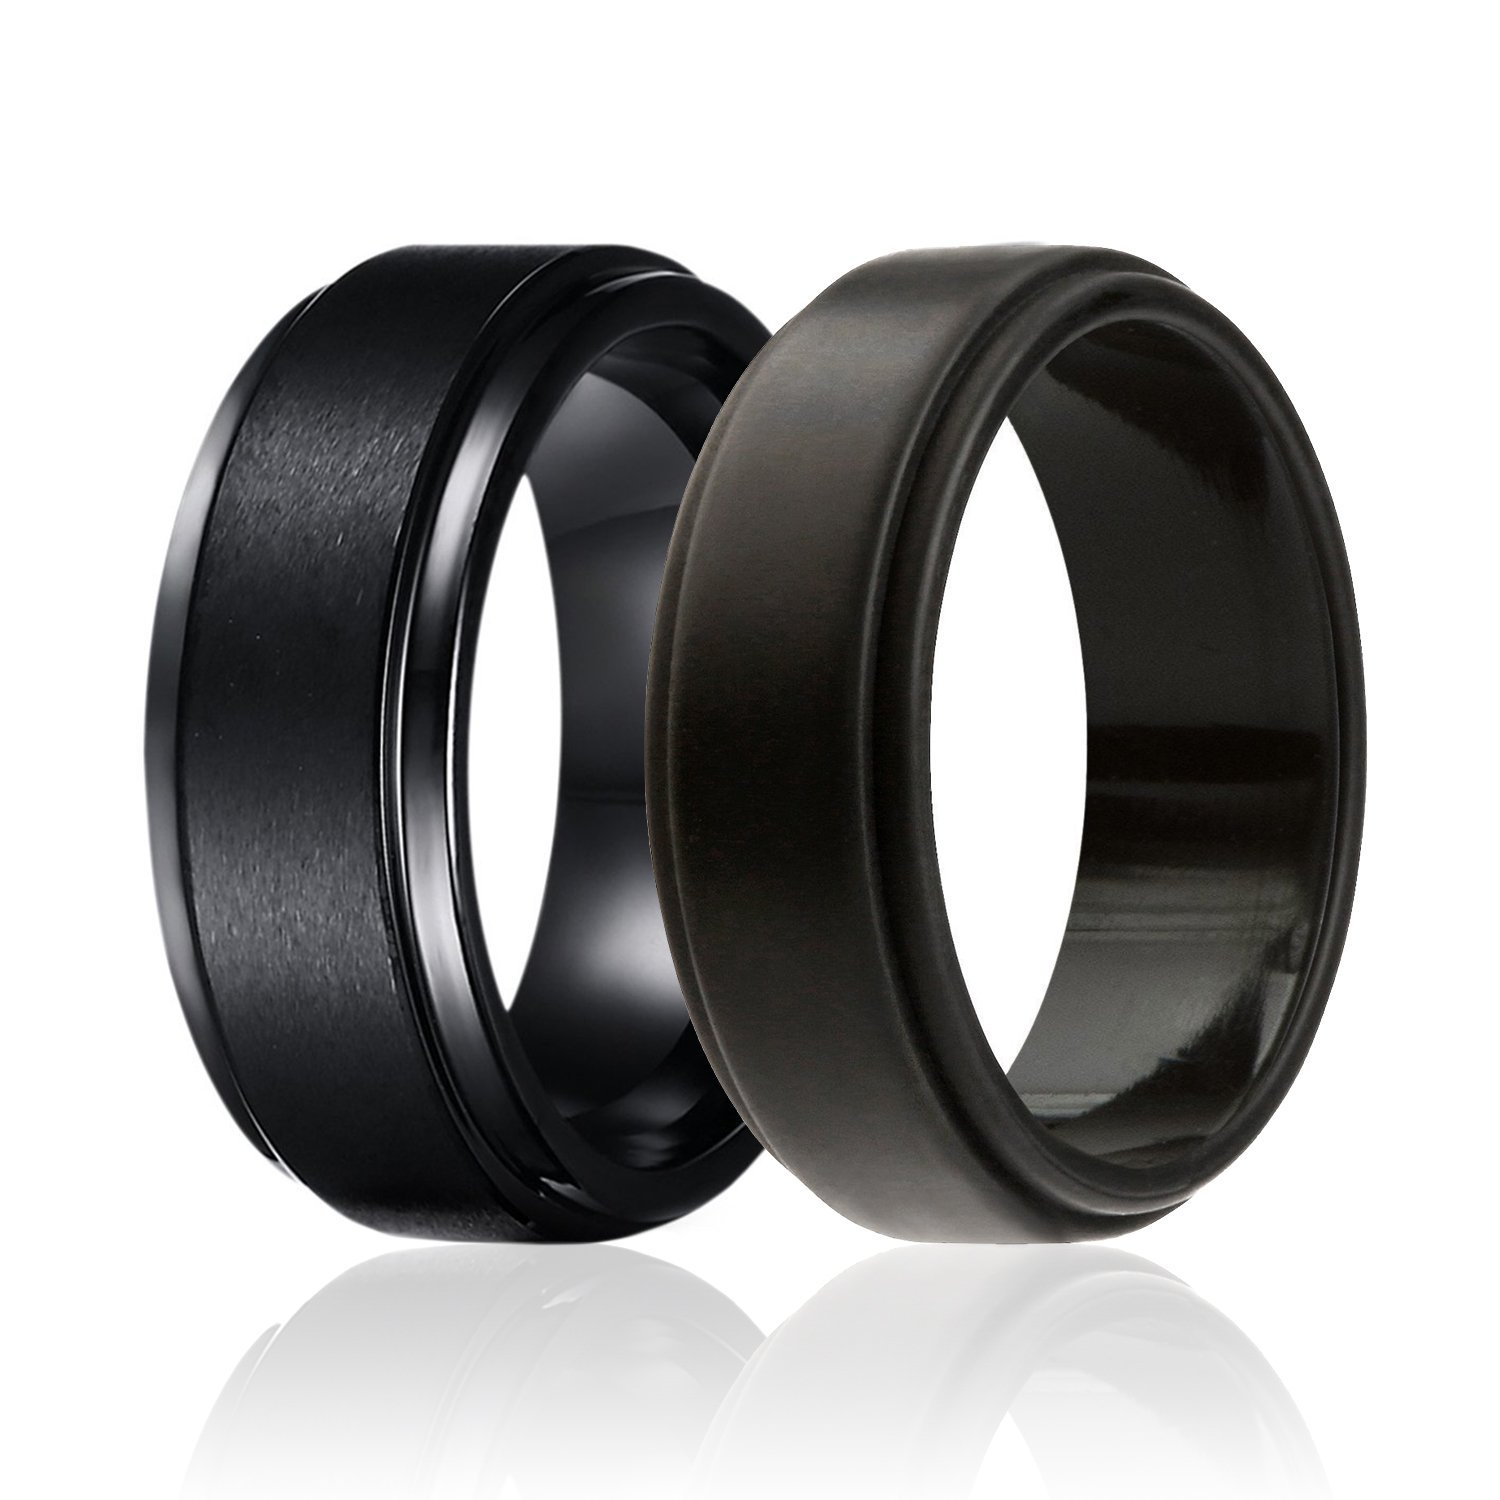 SOLEED Twins - Set of 2-1 Black Tungsten Wedding Band, Brushed Top, Step Edge and 1 Black Silicone Rubber Wedding Ring For Men, 8mm, Size 13